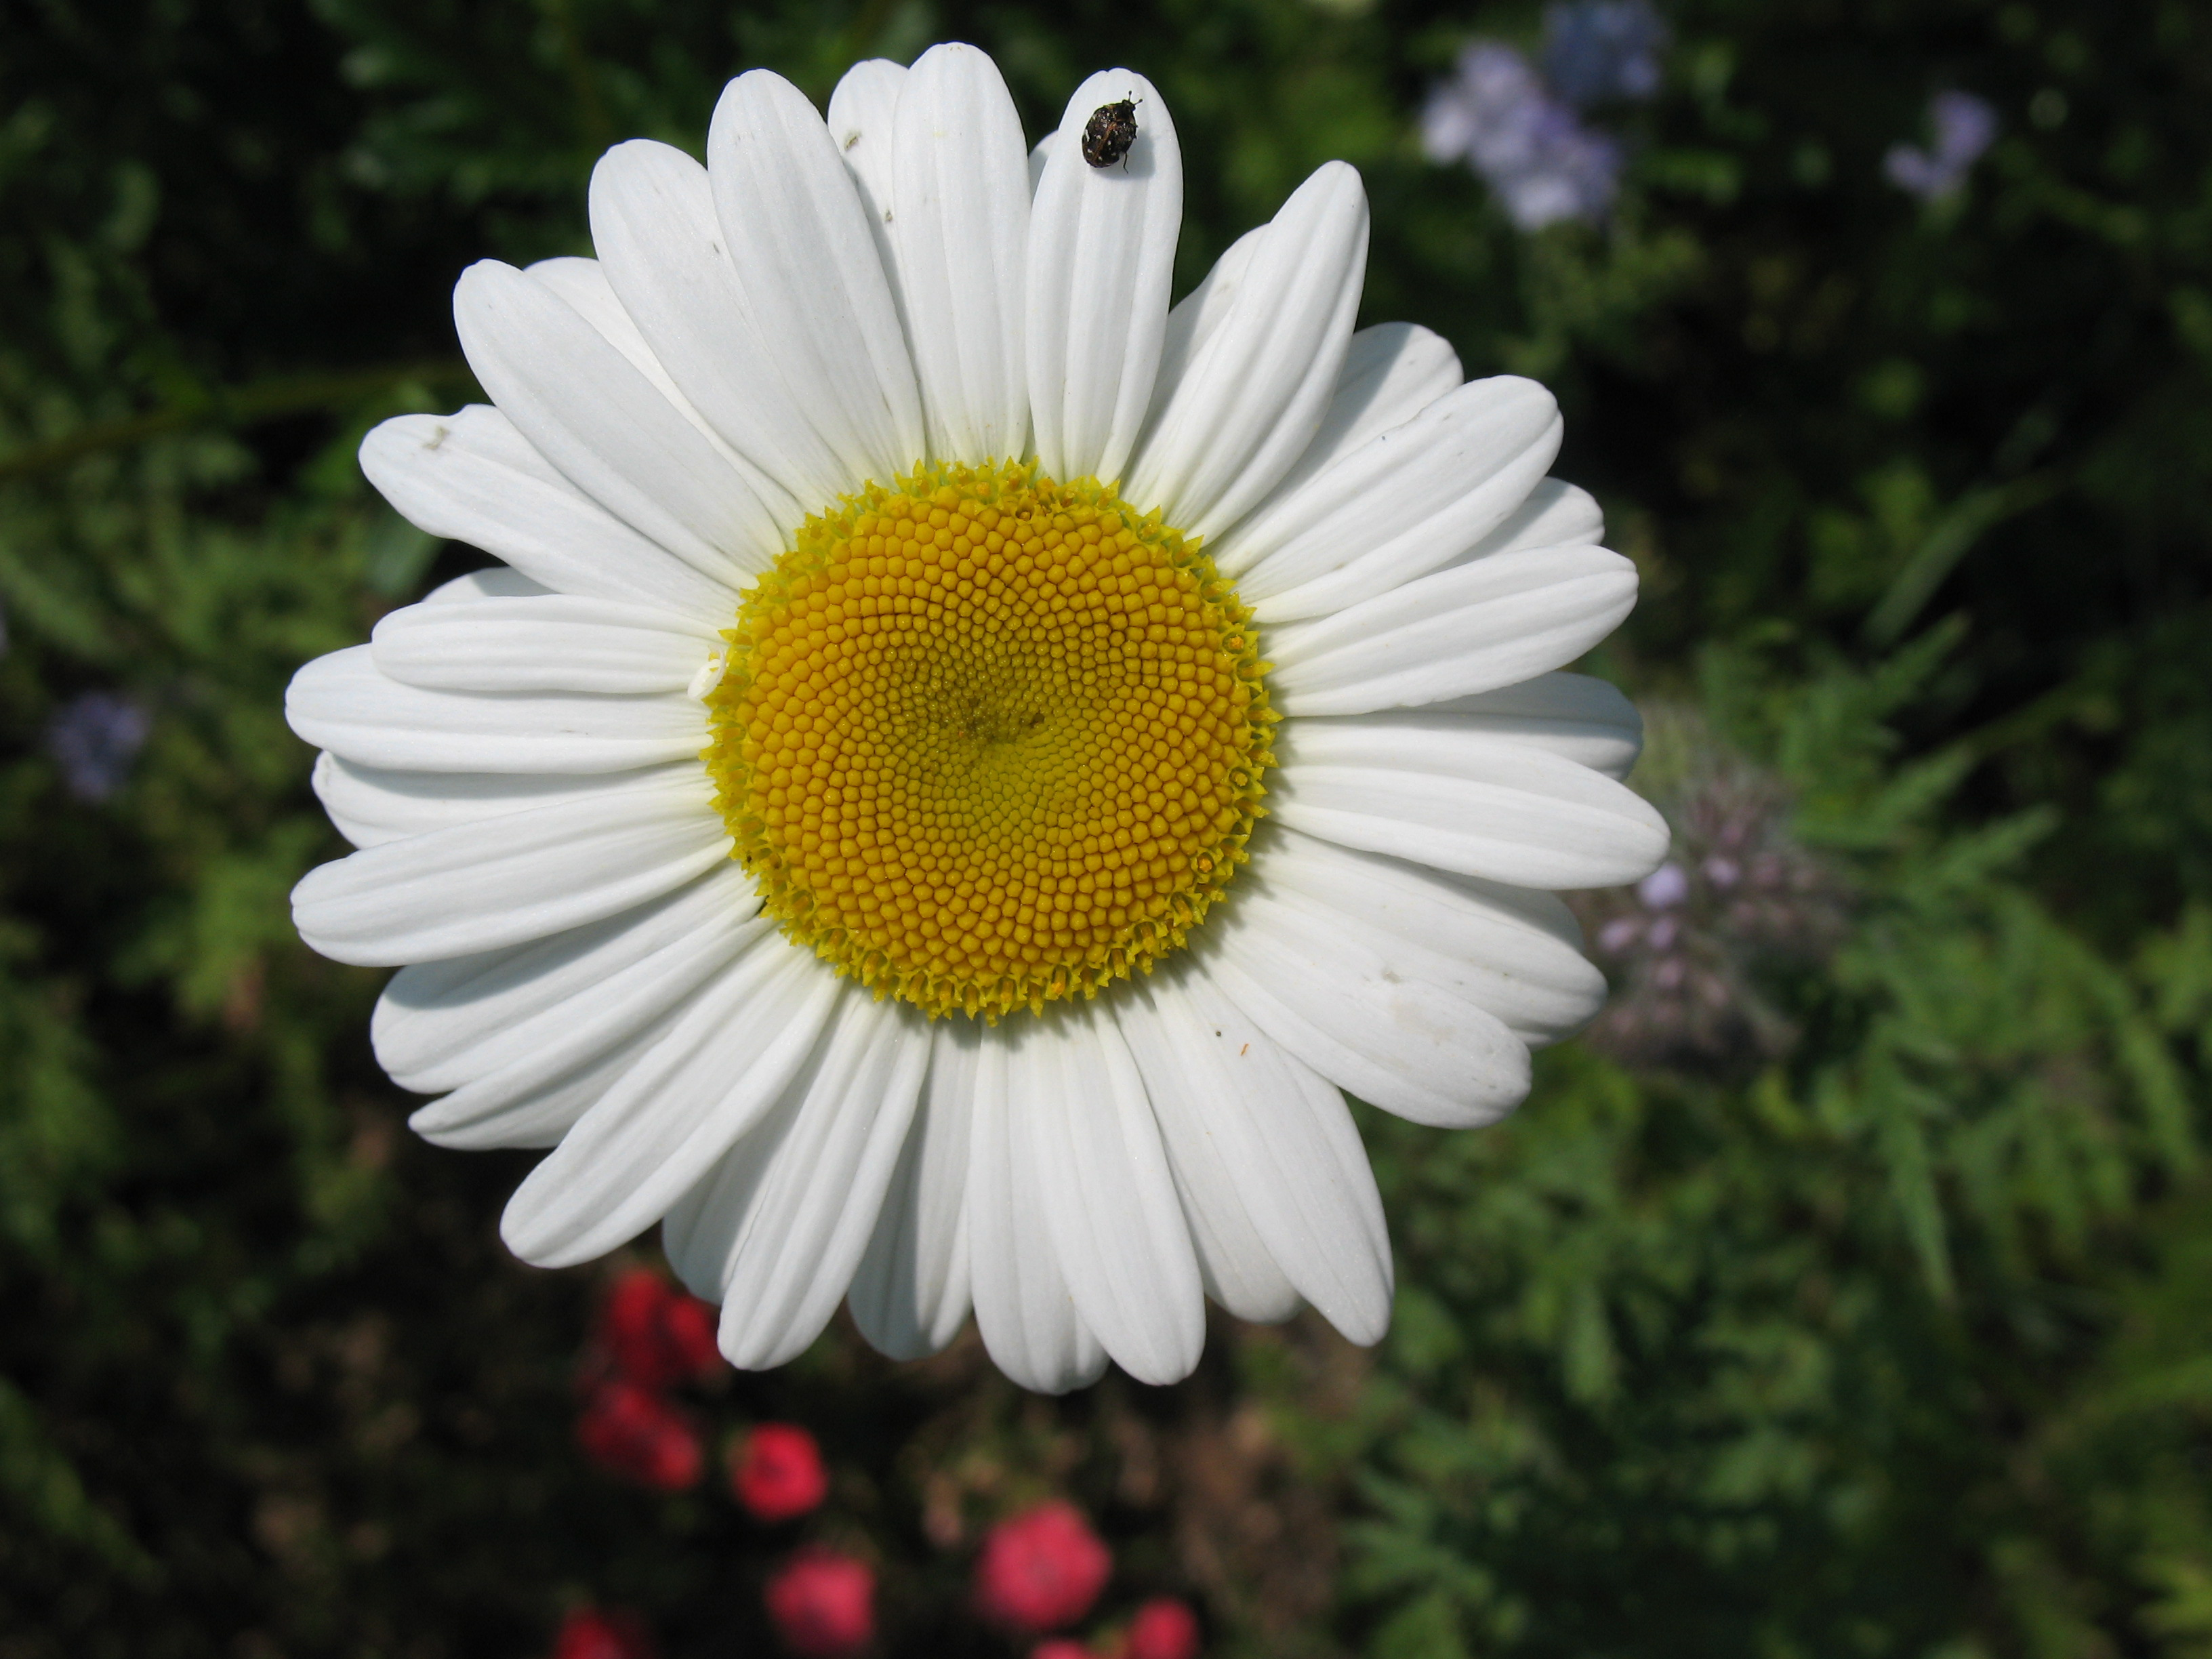 Margueritte salary